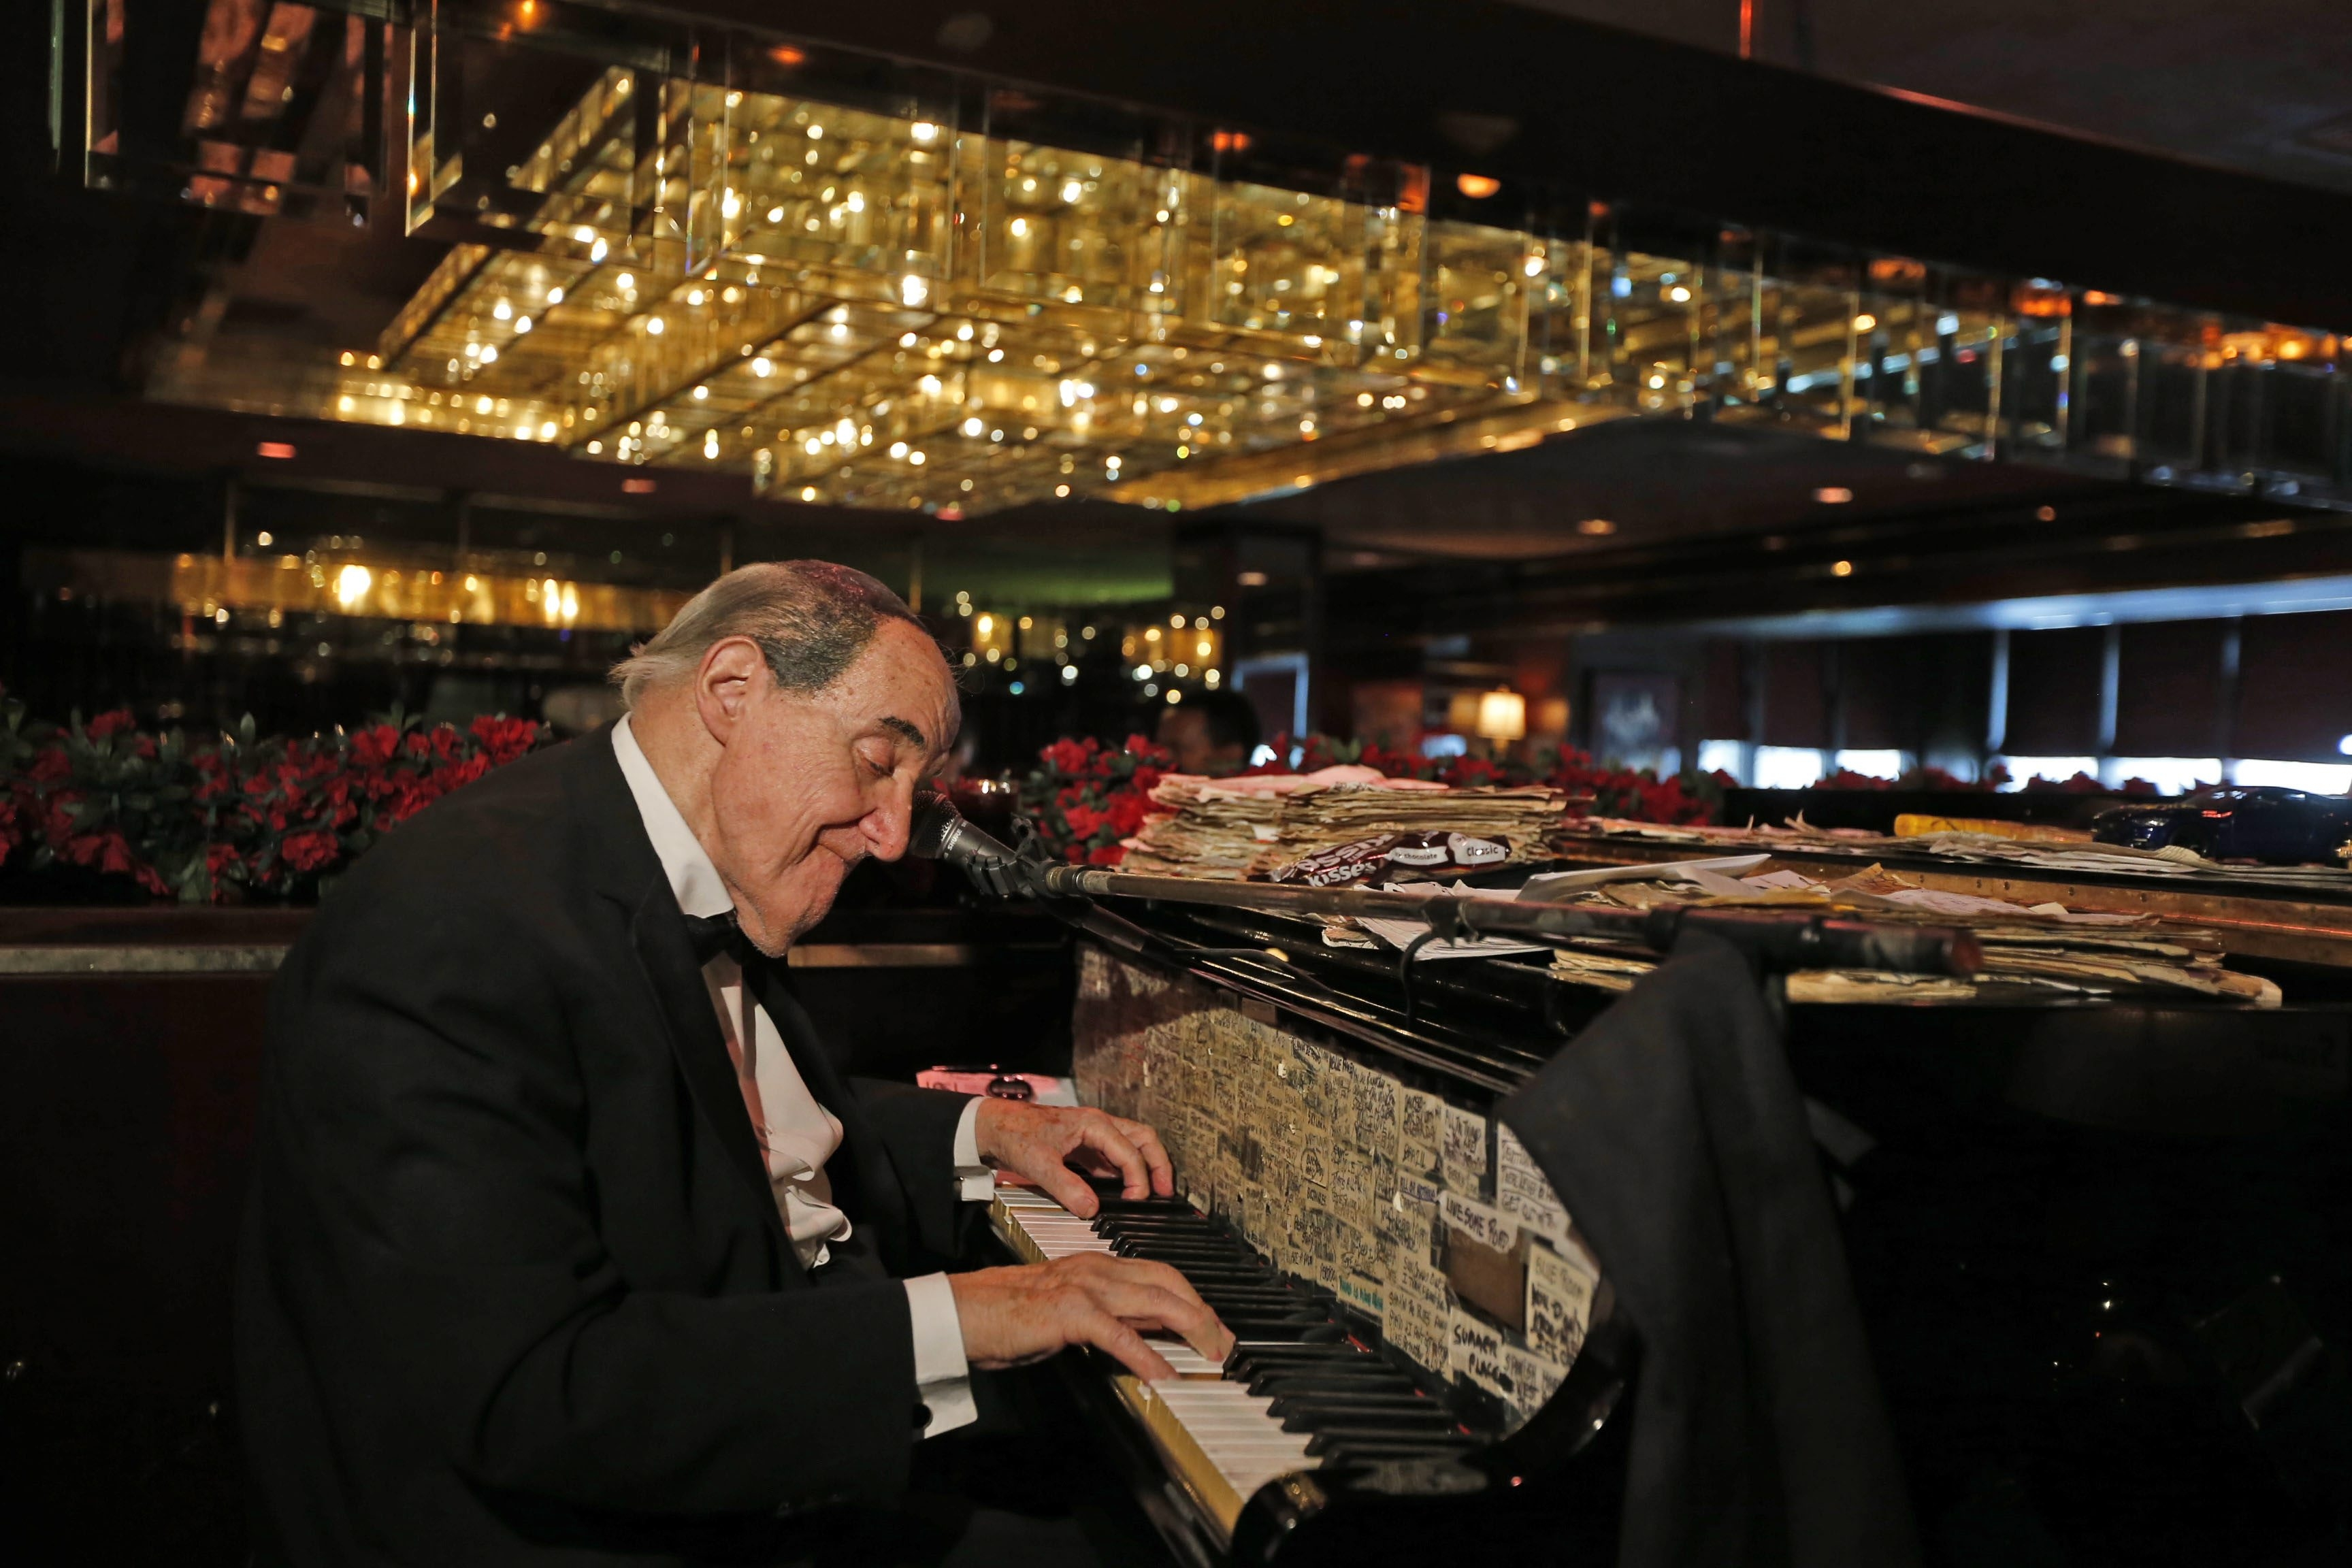 For Buffalo's legendary piano man Jackie Jocko, the show went on Thursday, despite the death of drummer Joe Peters, who Jocko called his partner in music and life. Jocko performed with his piano and sang supper-club classics at E.B. Green's.